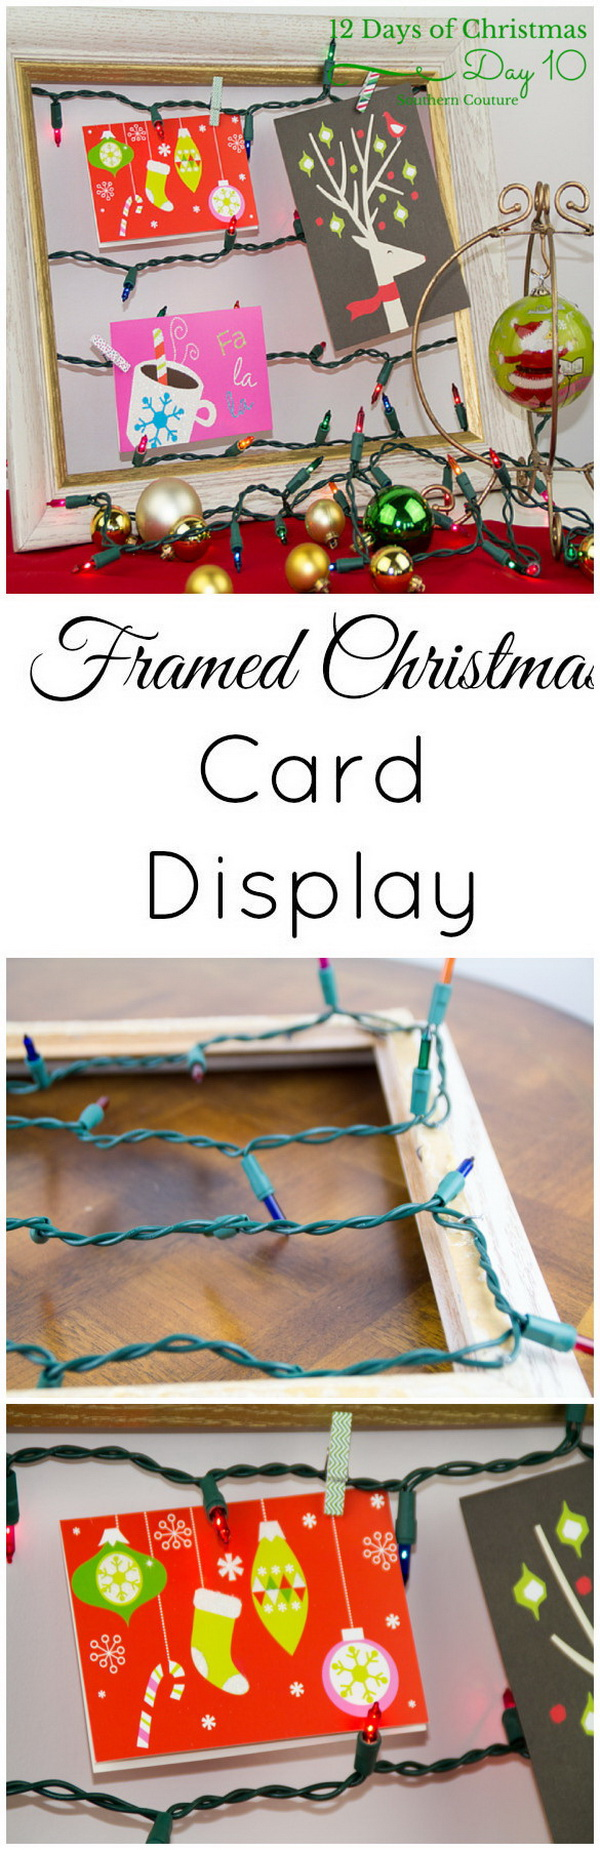 Framed Christmas Card Display With String Christmas Lights.